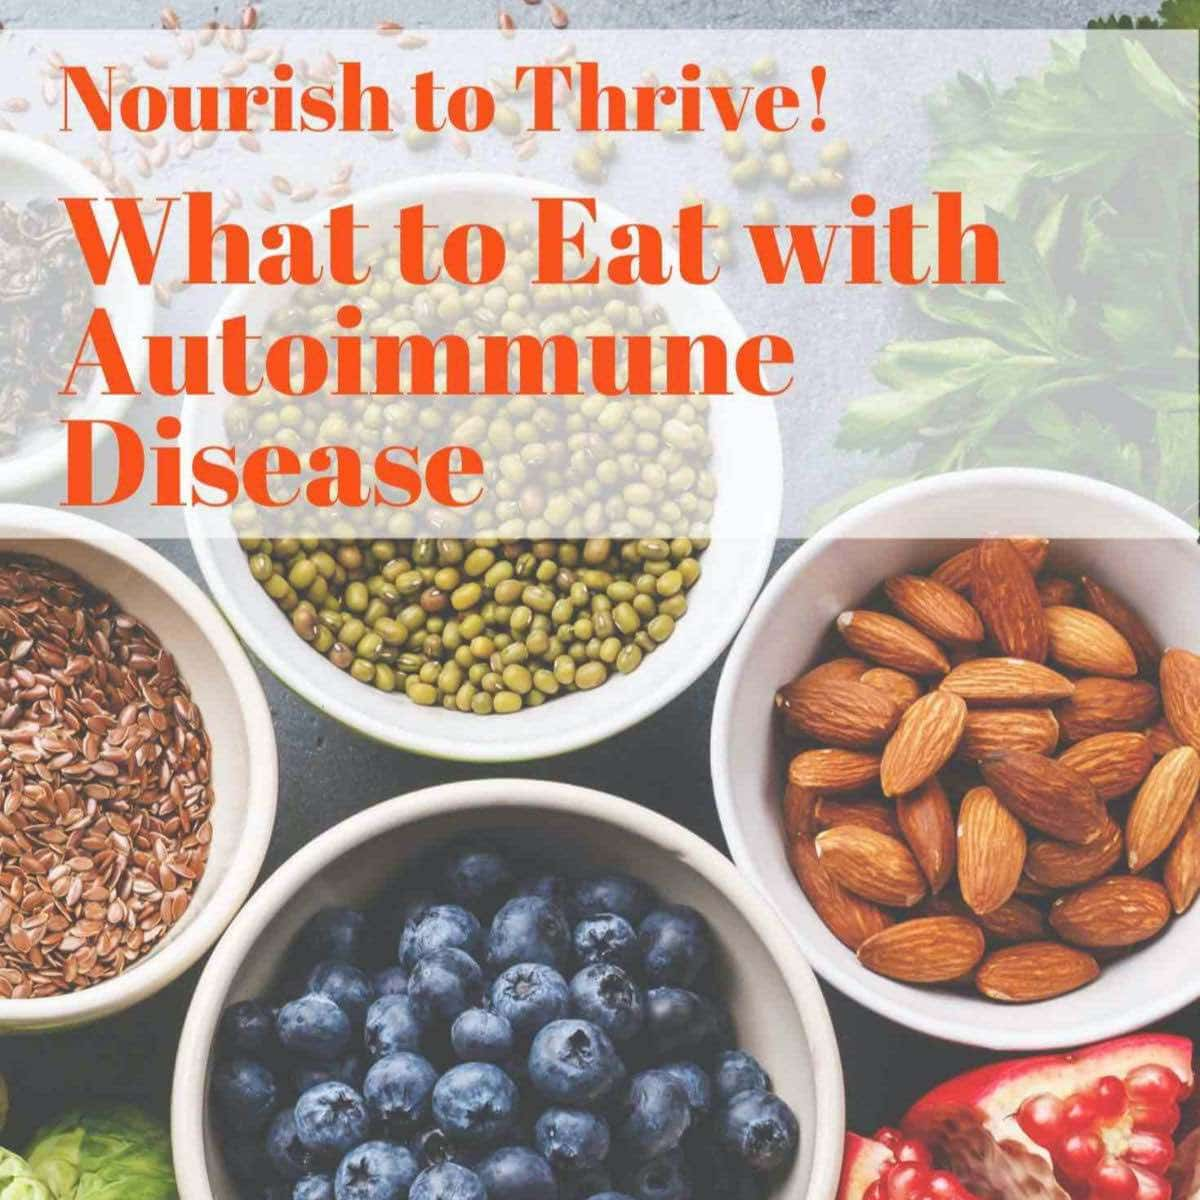 Sjogren's Diet | What to eat with autoimmune disease image with health food.